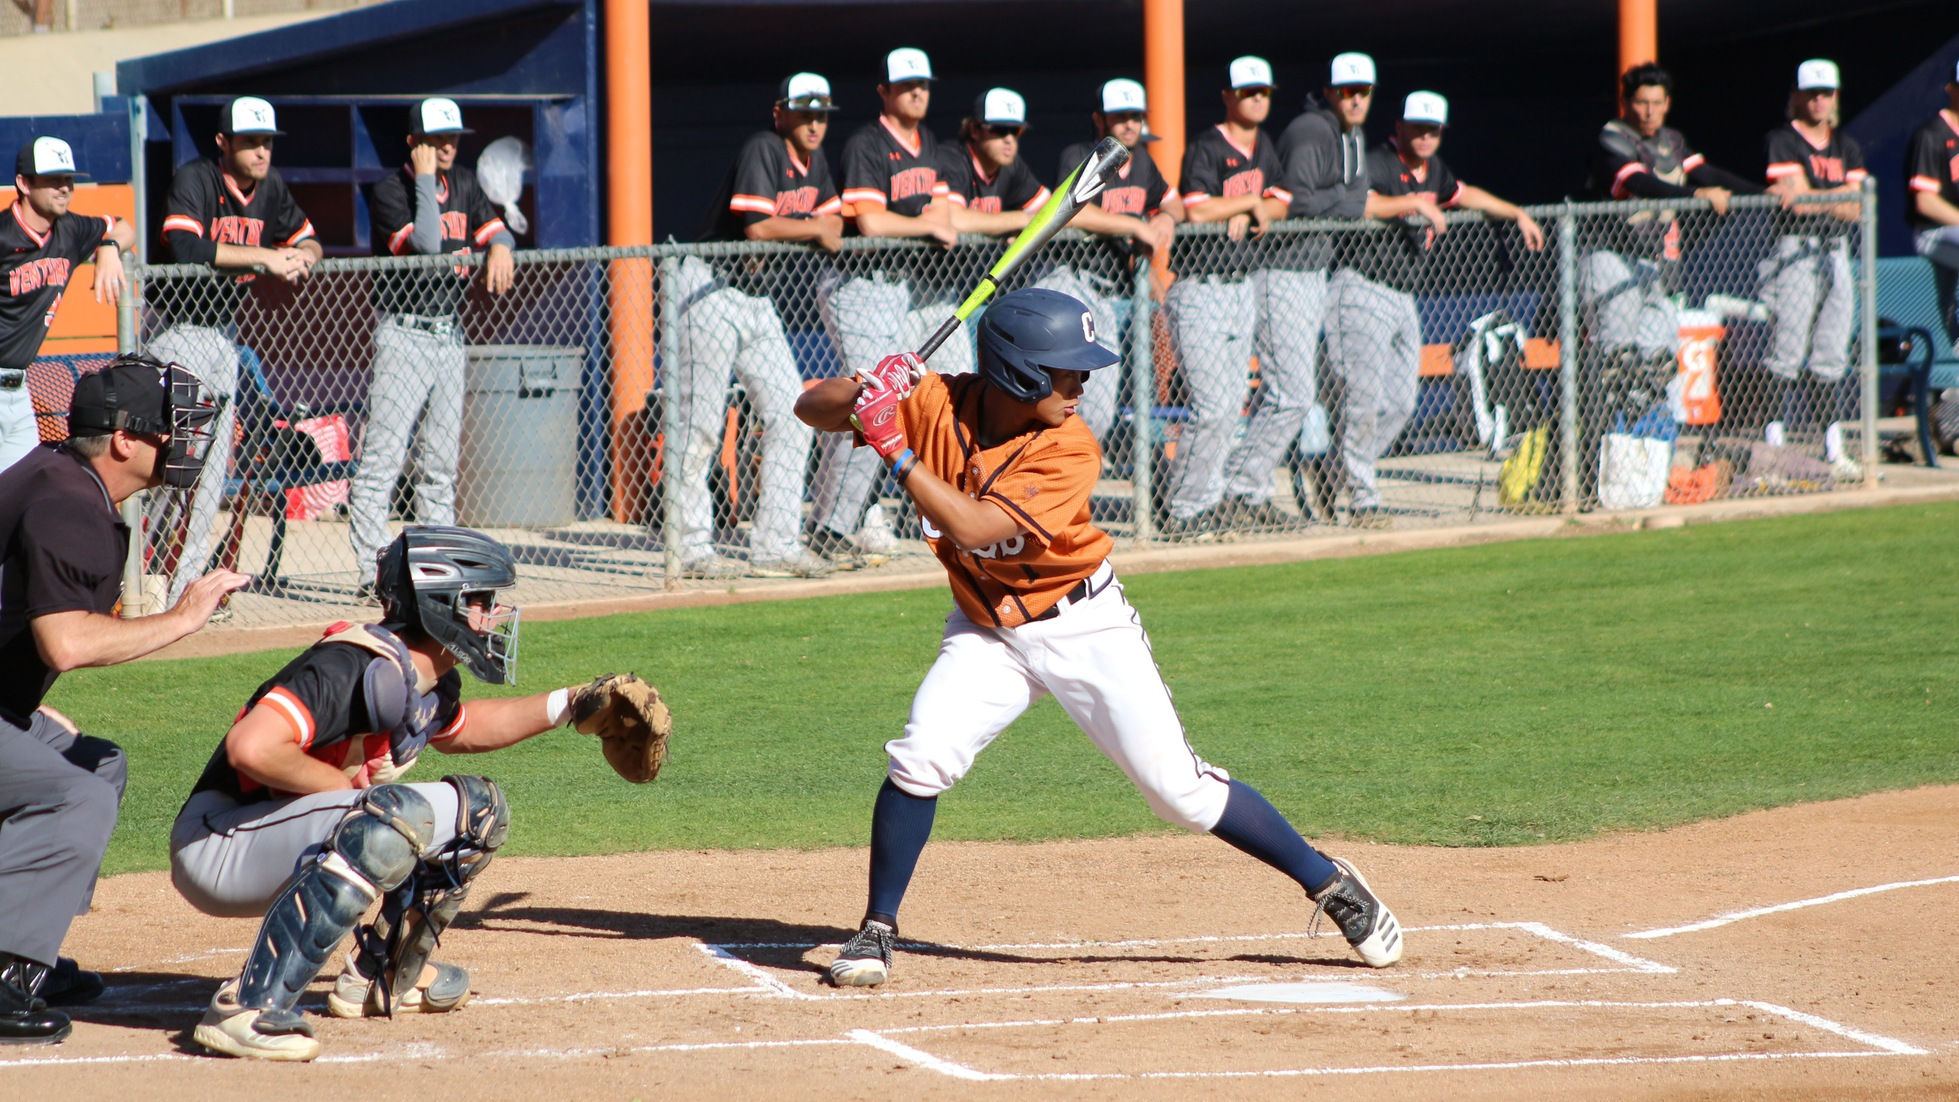 Go Hattori goes 3-for-4 at the plate against Cypress. Photo by: Brian Cone